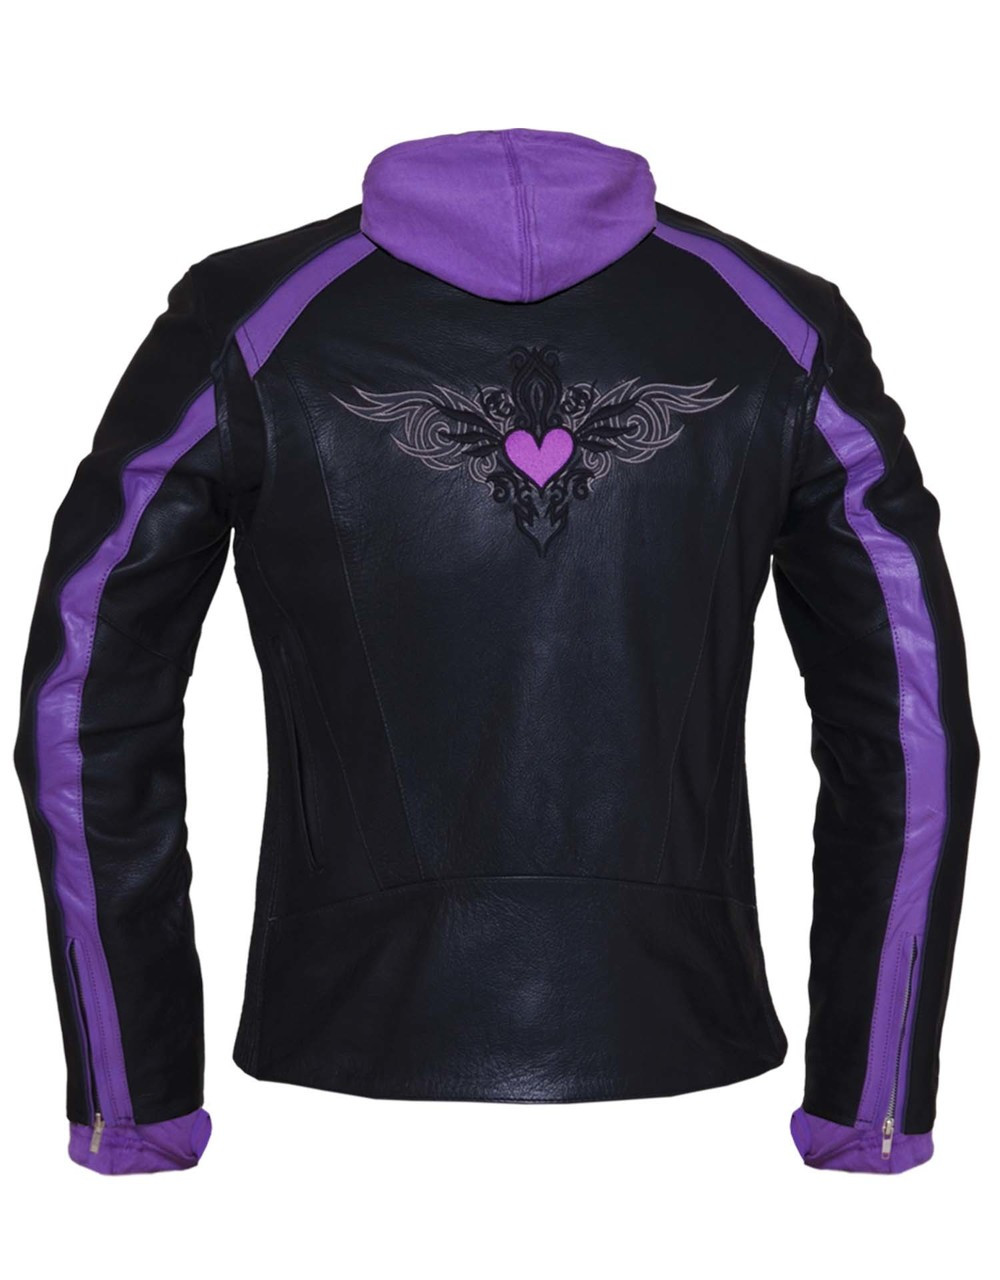 Black Amp Purple Or Pink Embroidered Leather Motorcycle